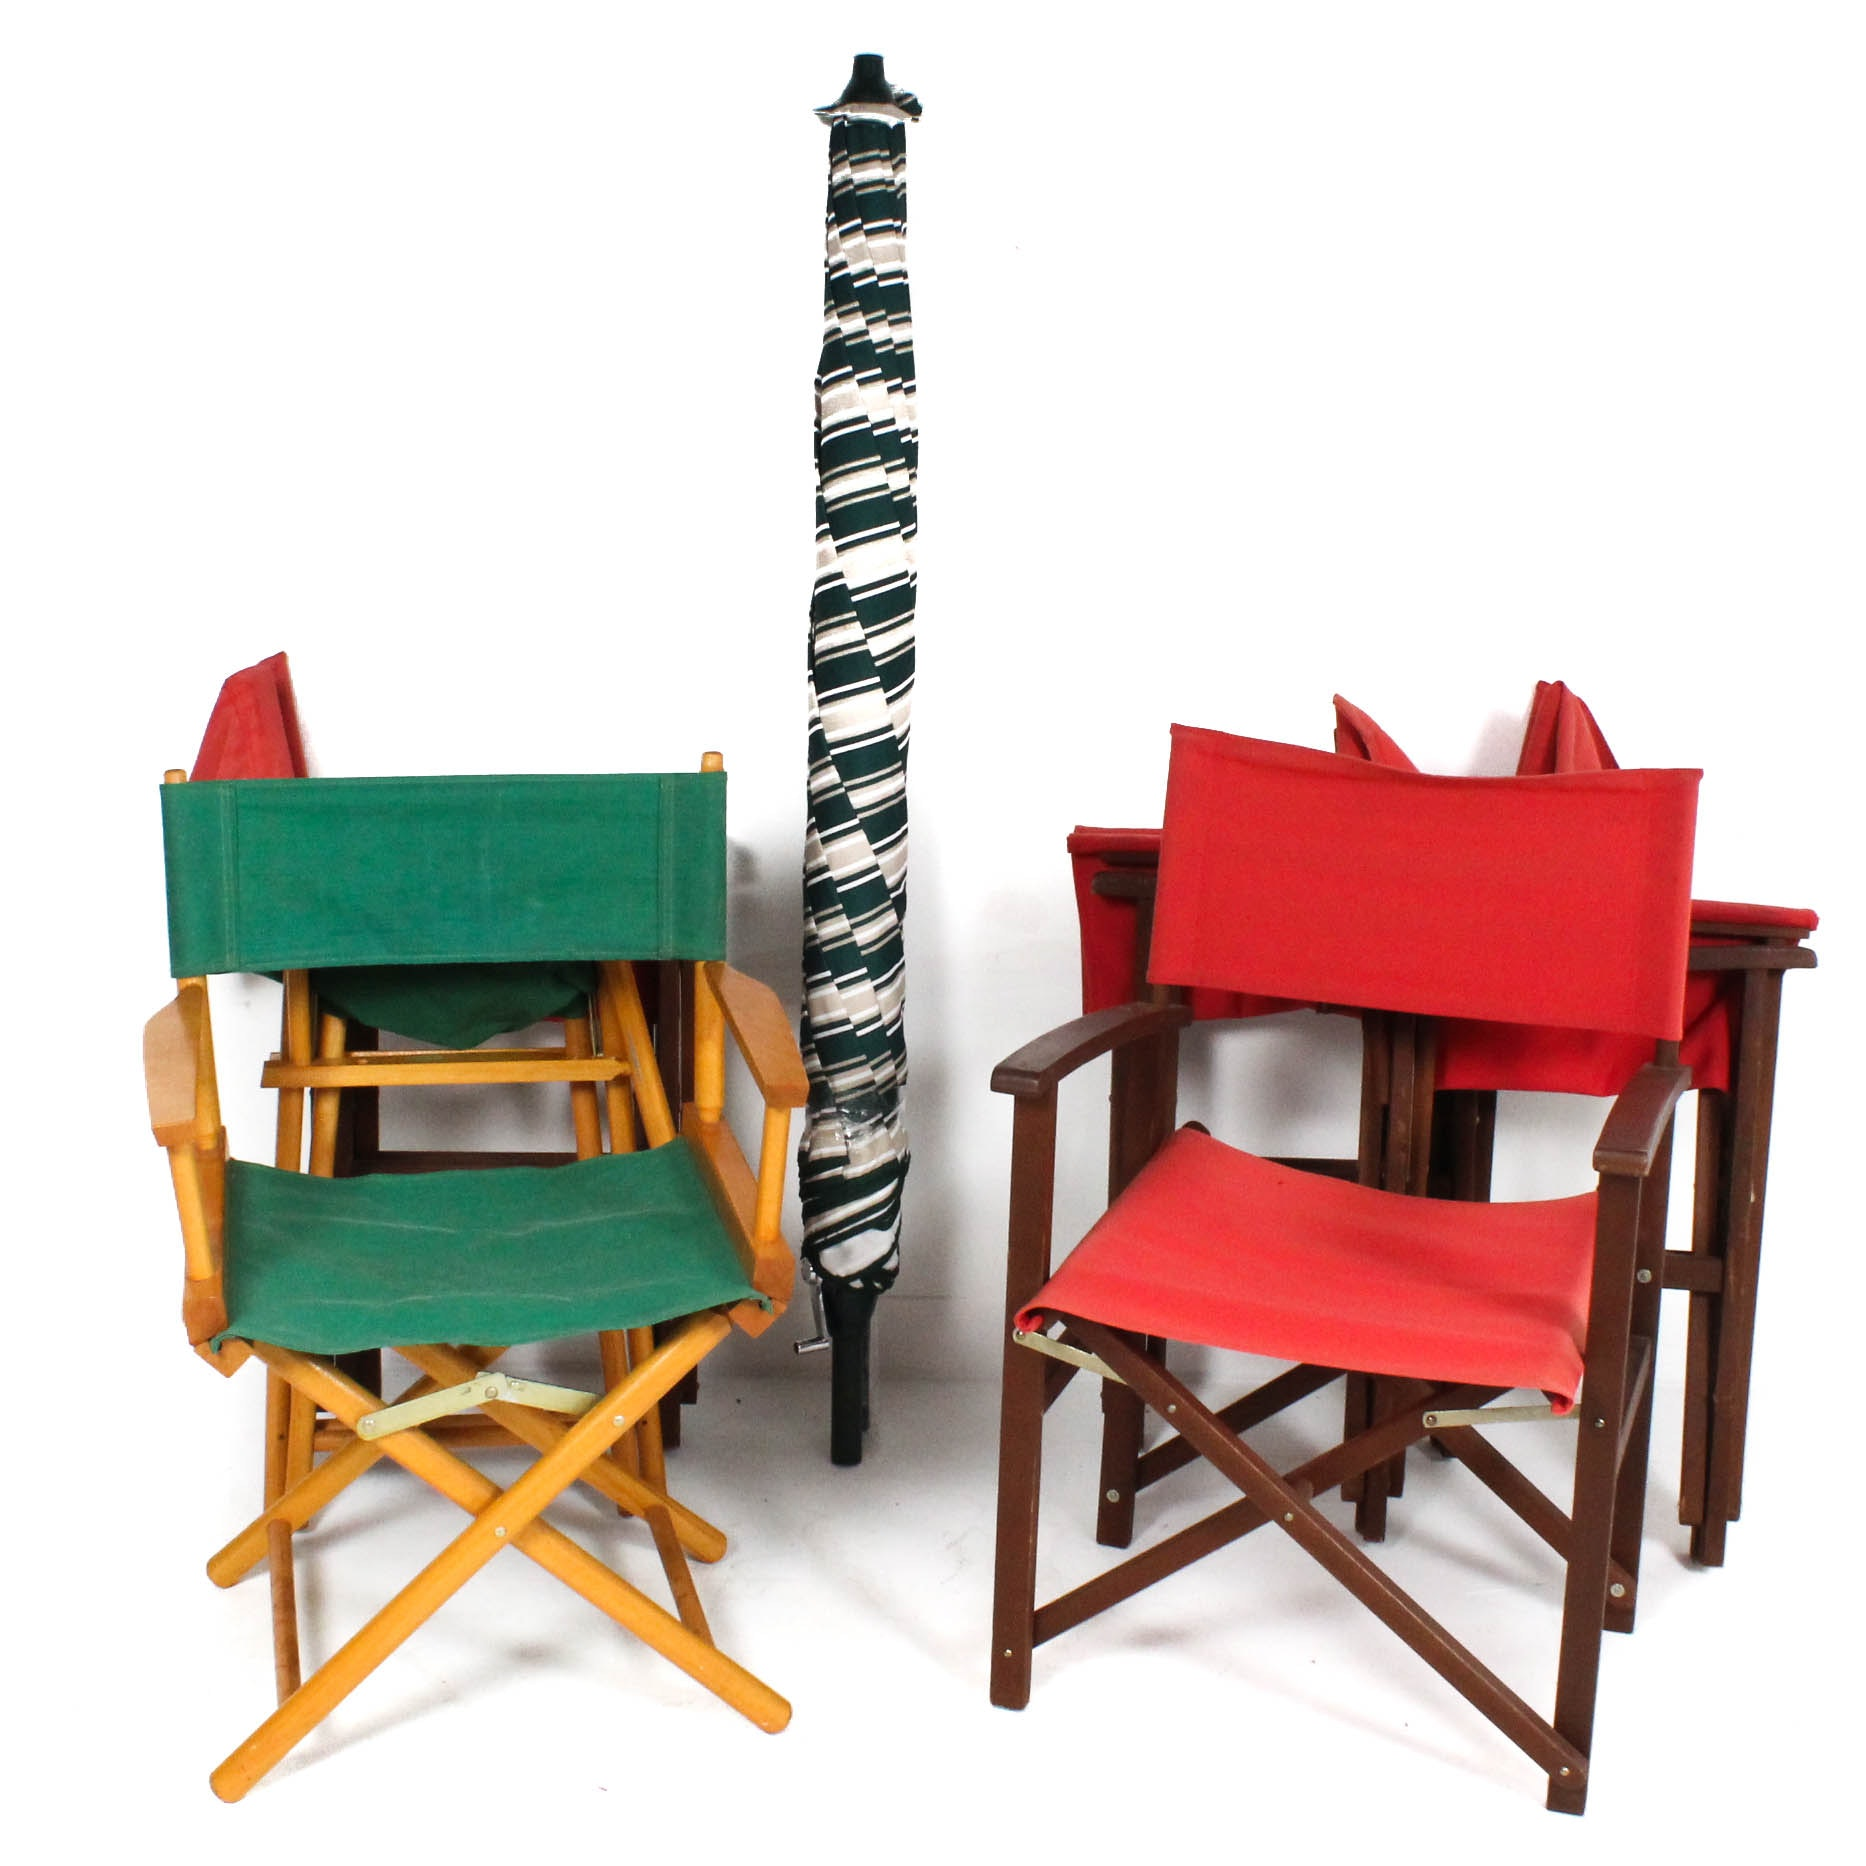 Vintage Collapsible Director Chairs and Patio Umbrella